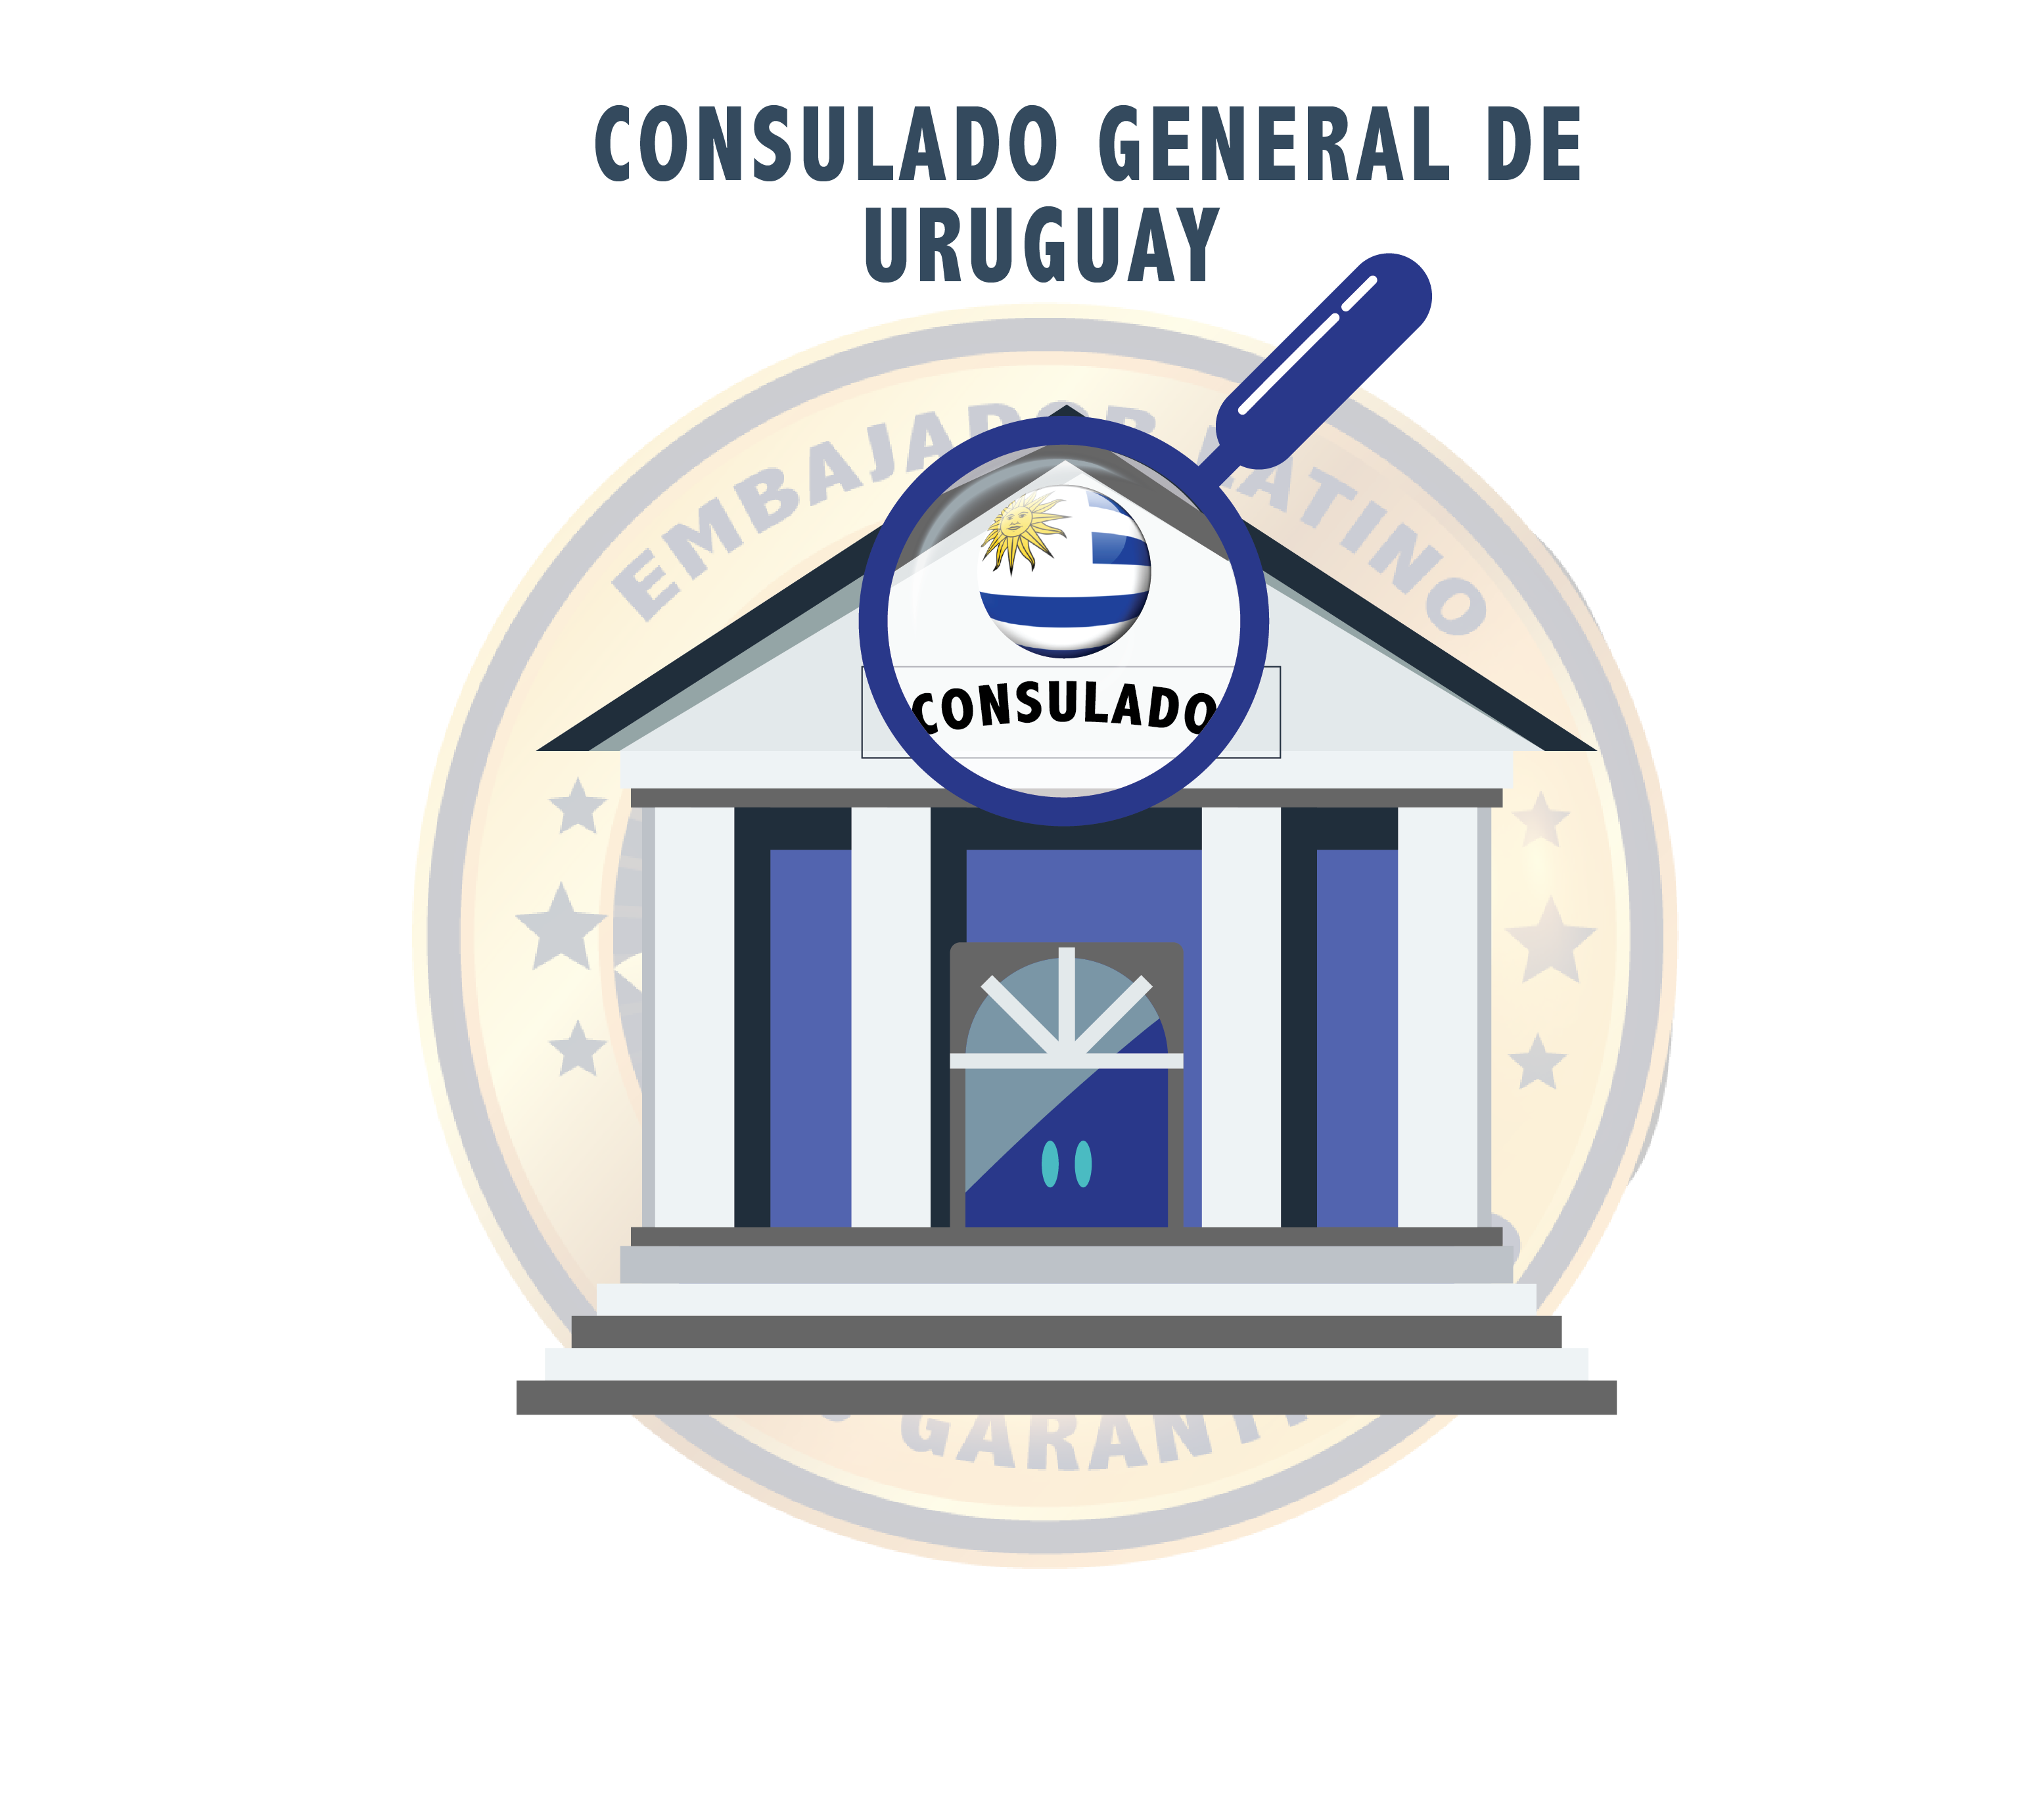 Consulate General of Uruguay